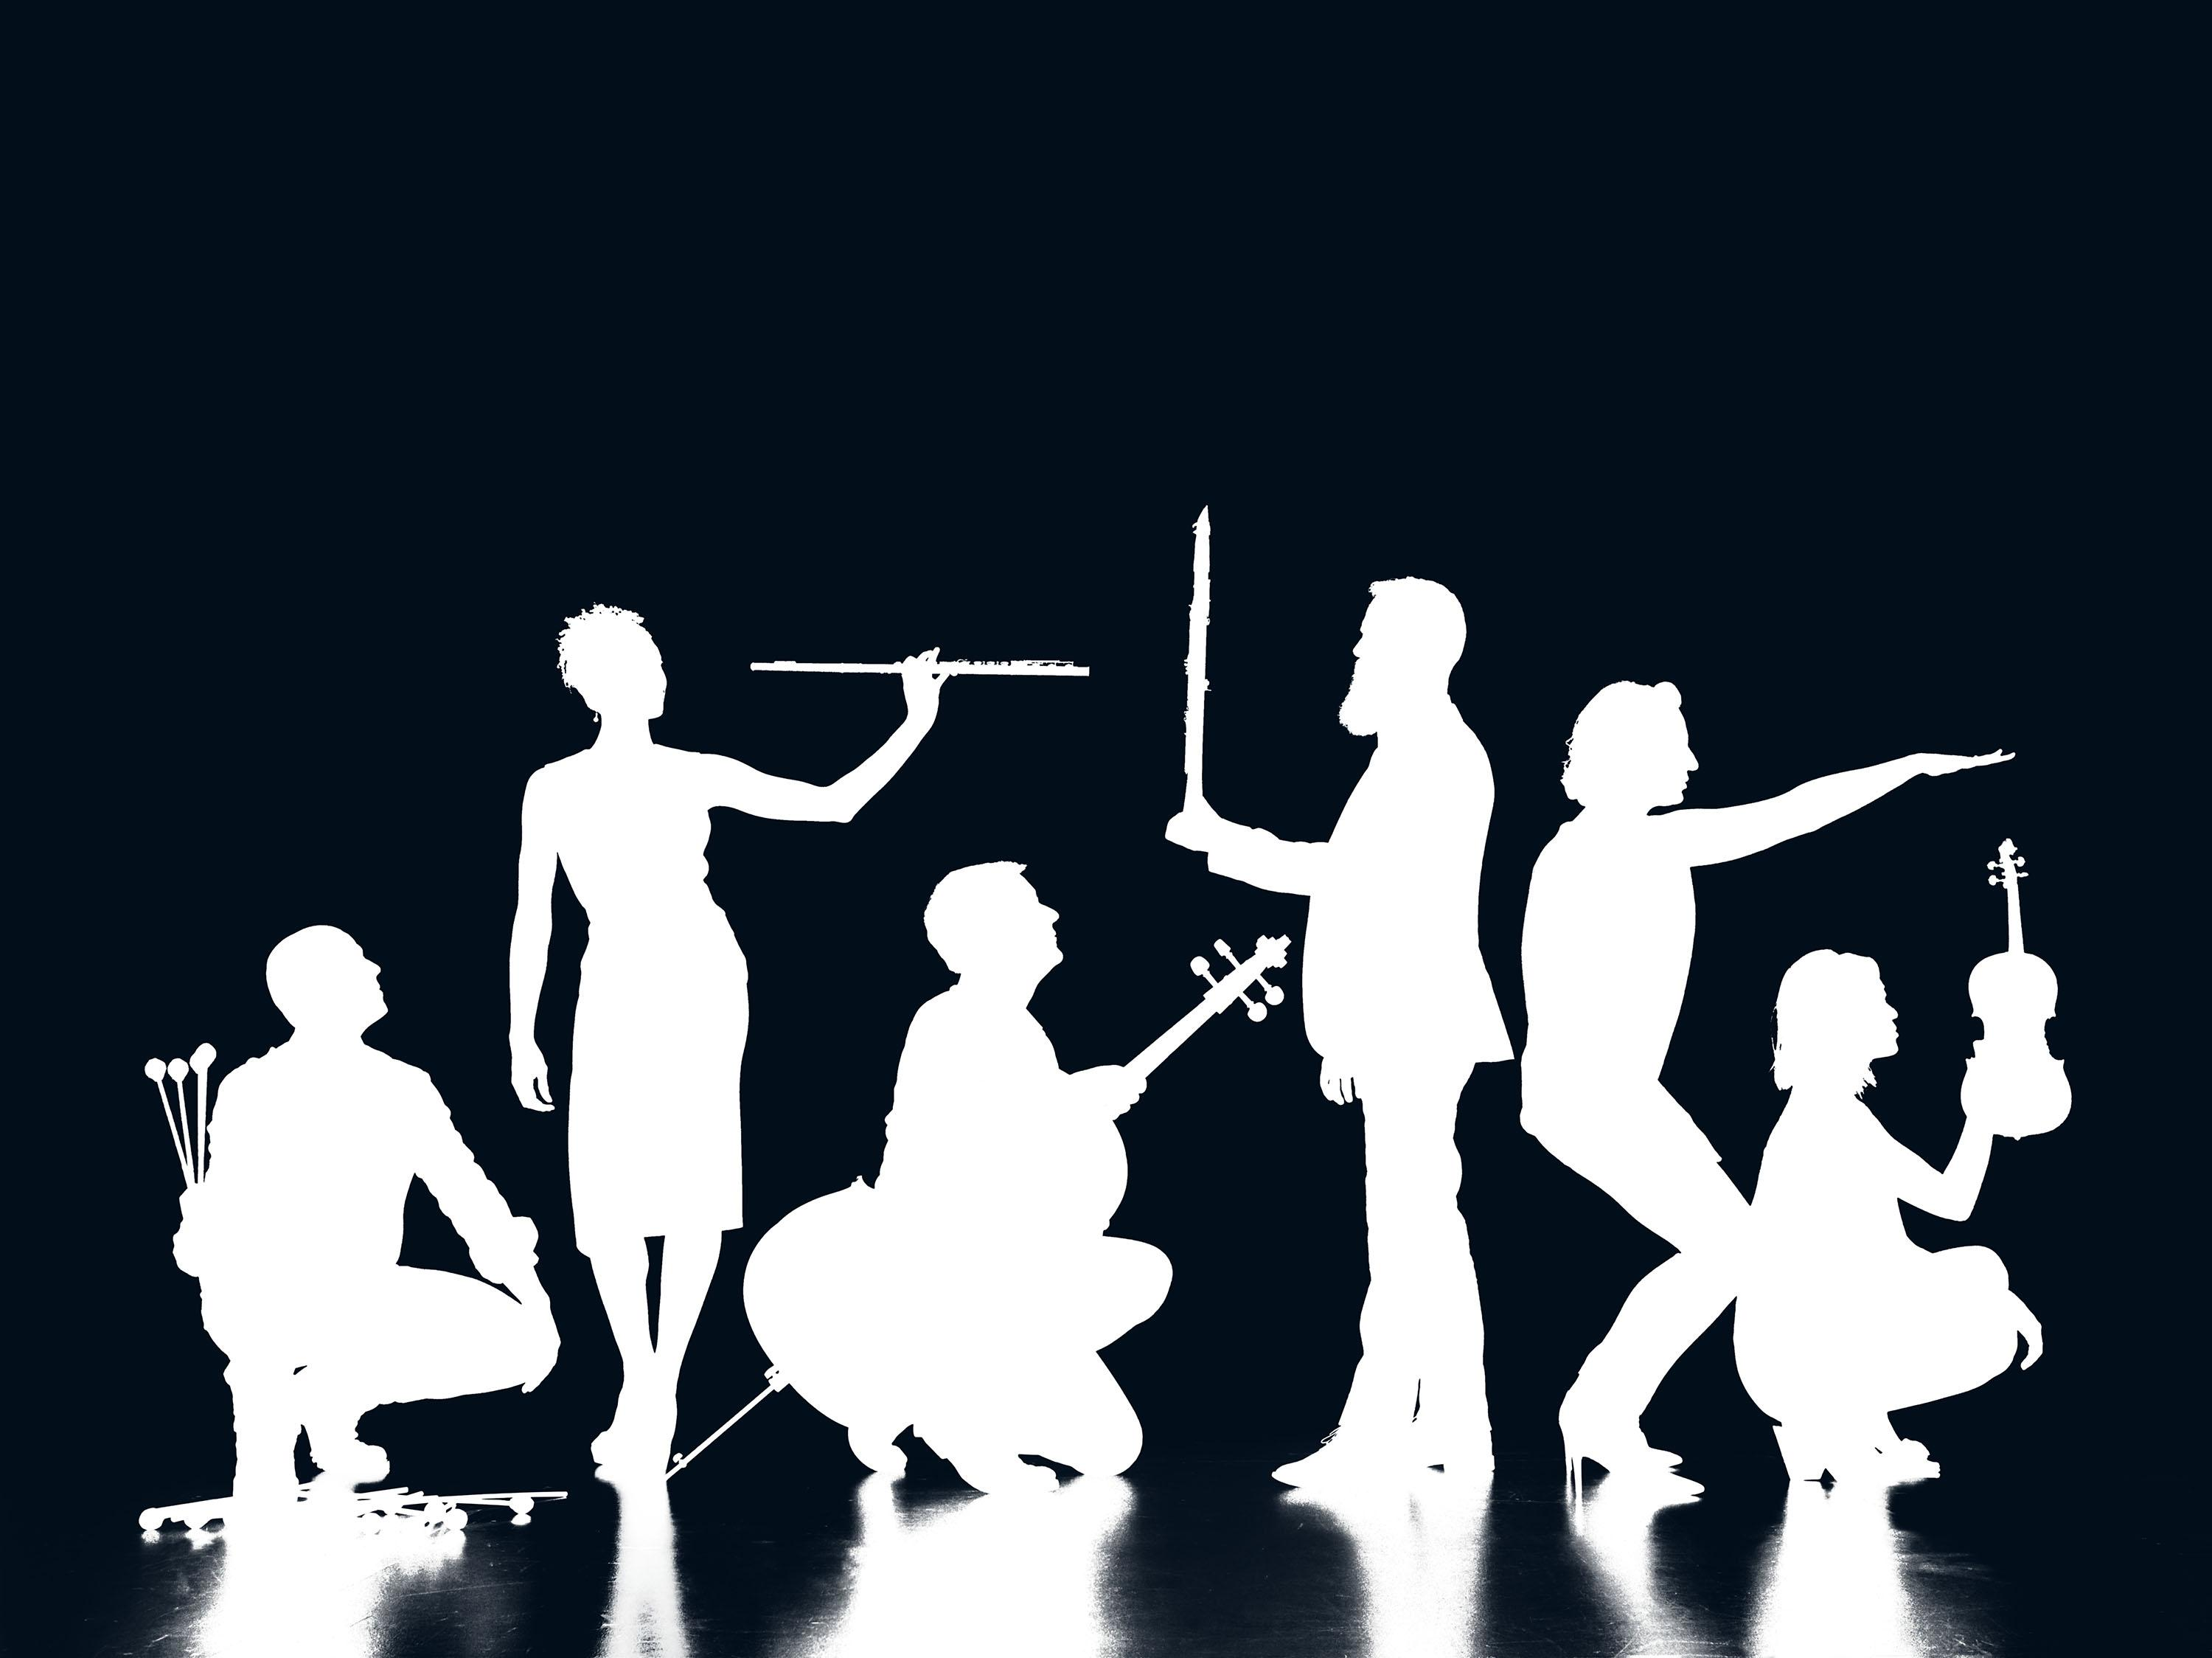 White silhouettes of six people holding instruments against a black background